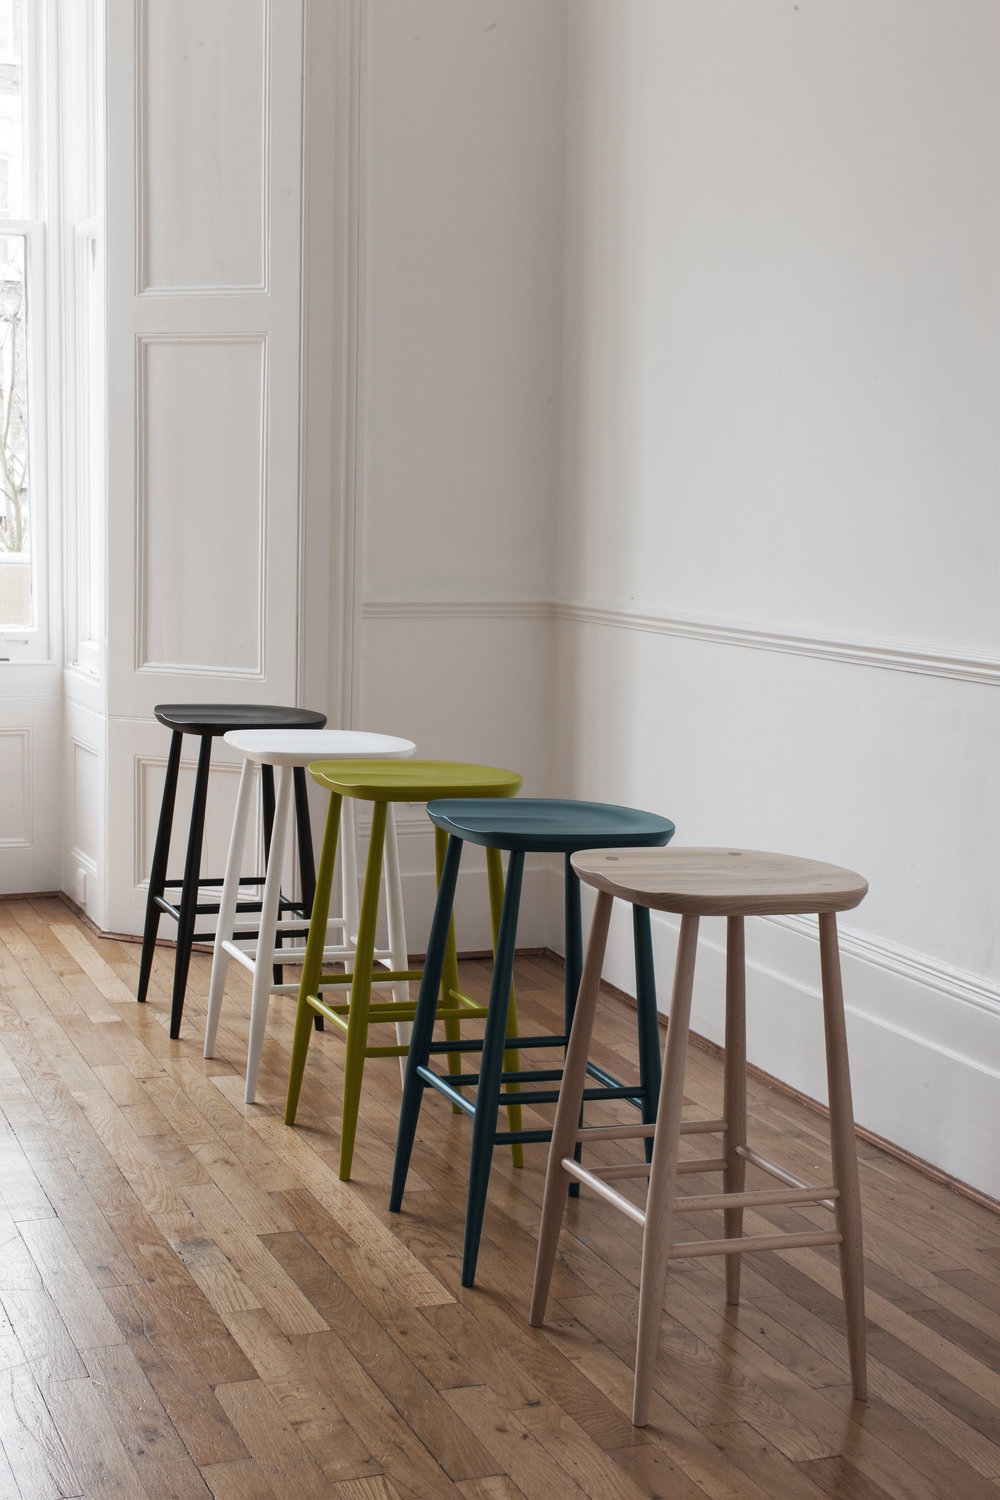 ercol 1666 bar stools colours copy.jpg